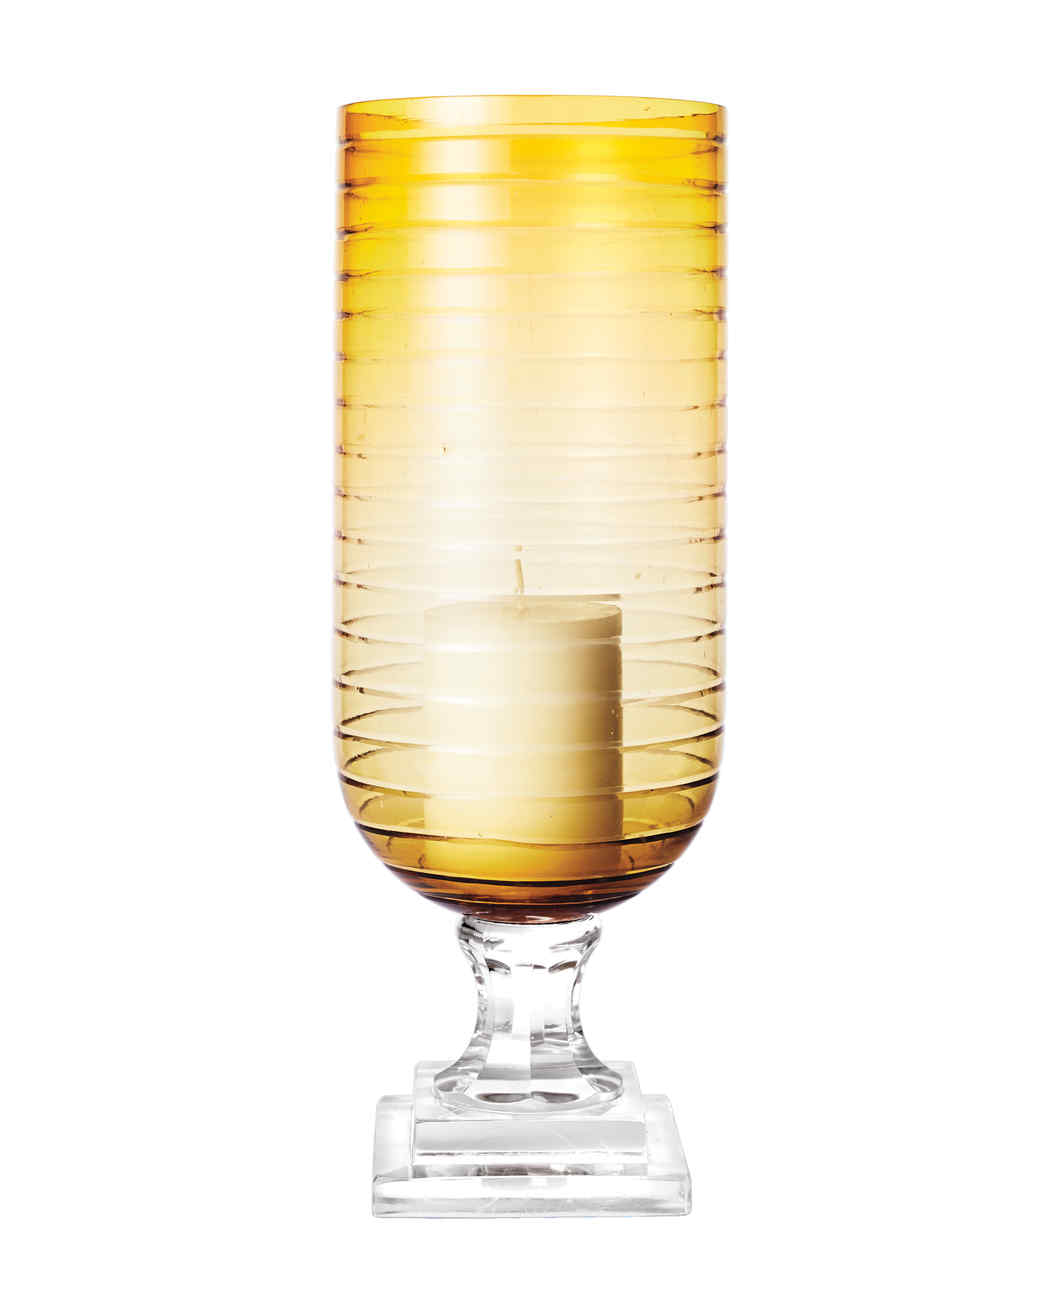 bunny-williams-large-glass-yellow-candlestick-002-d111476.jpg